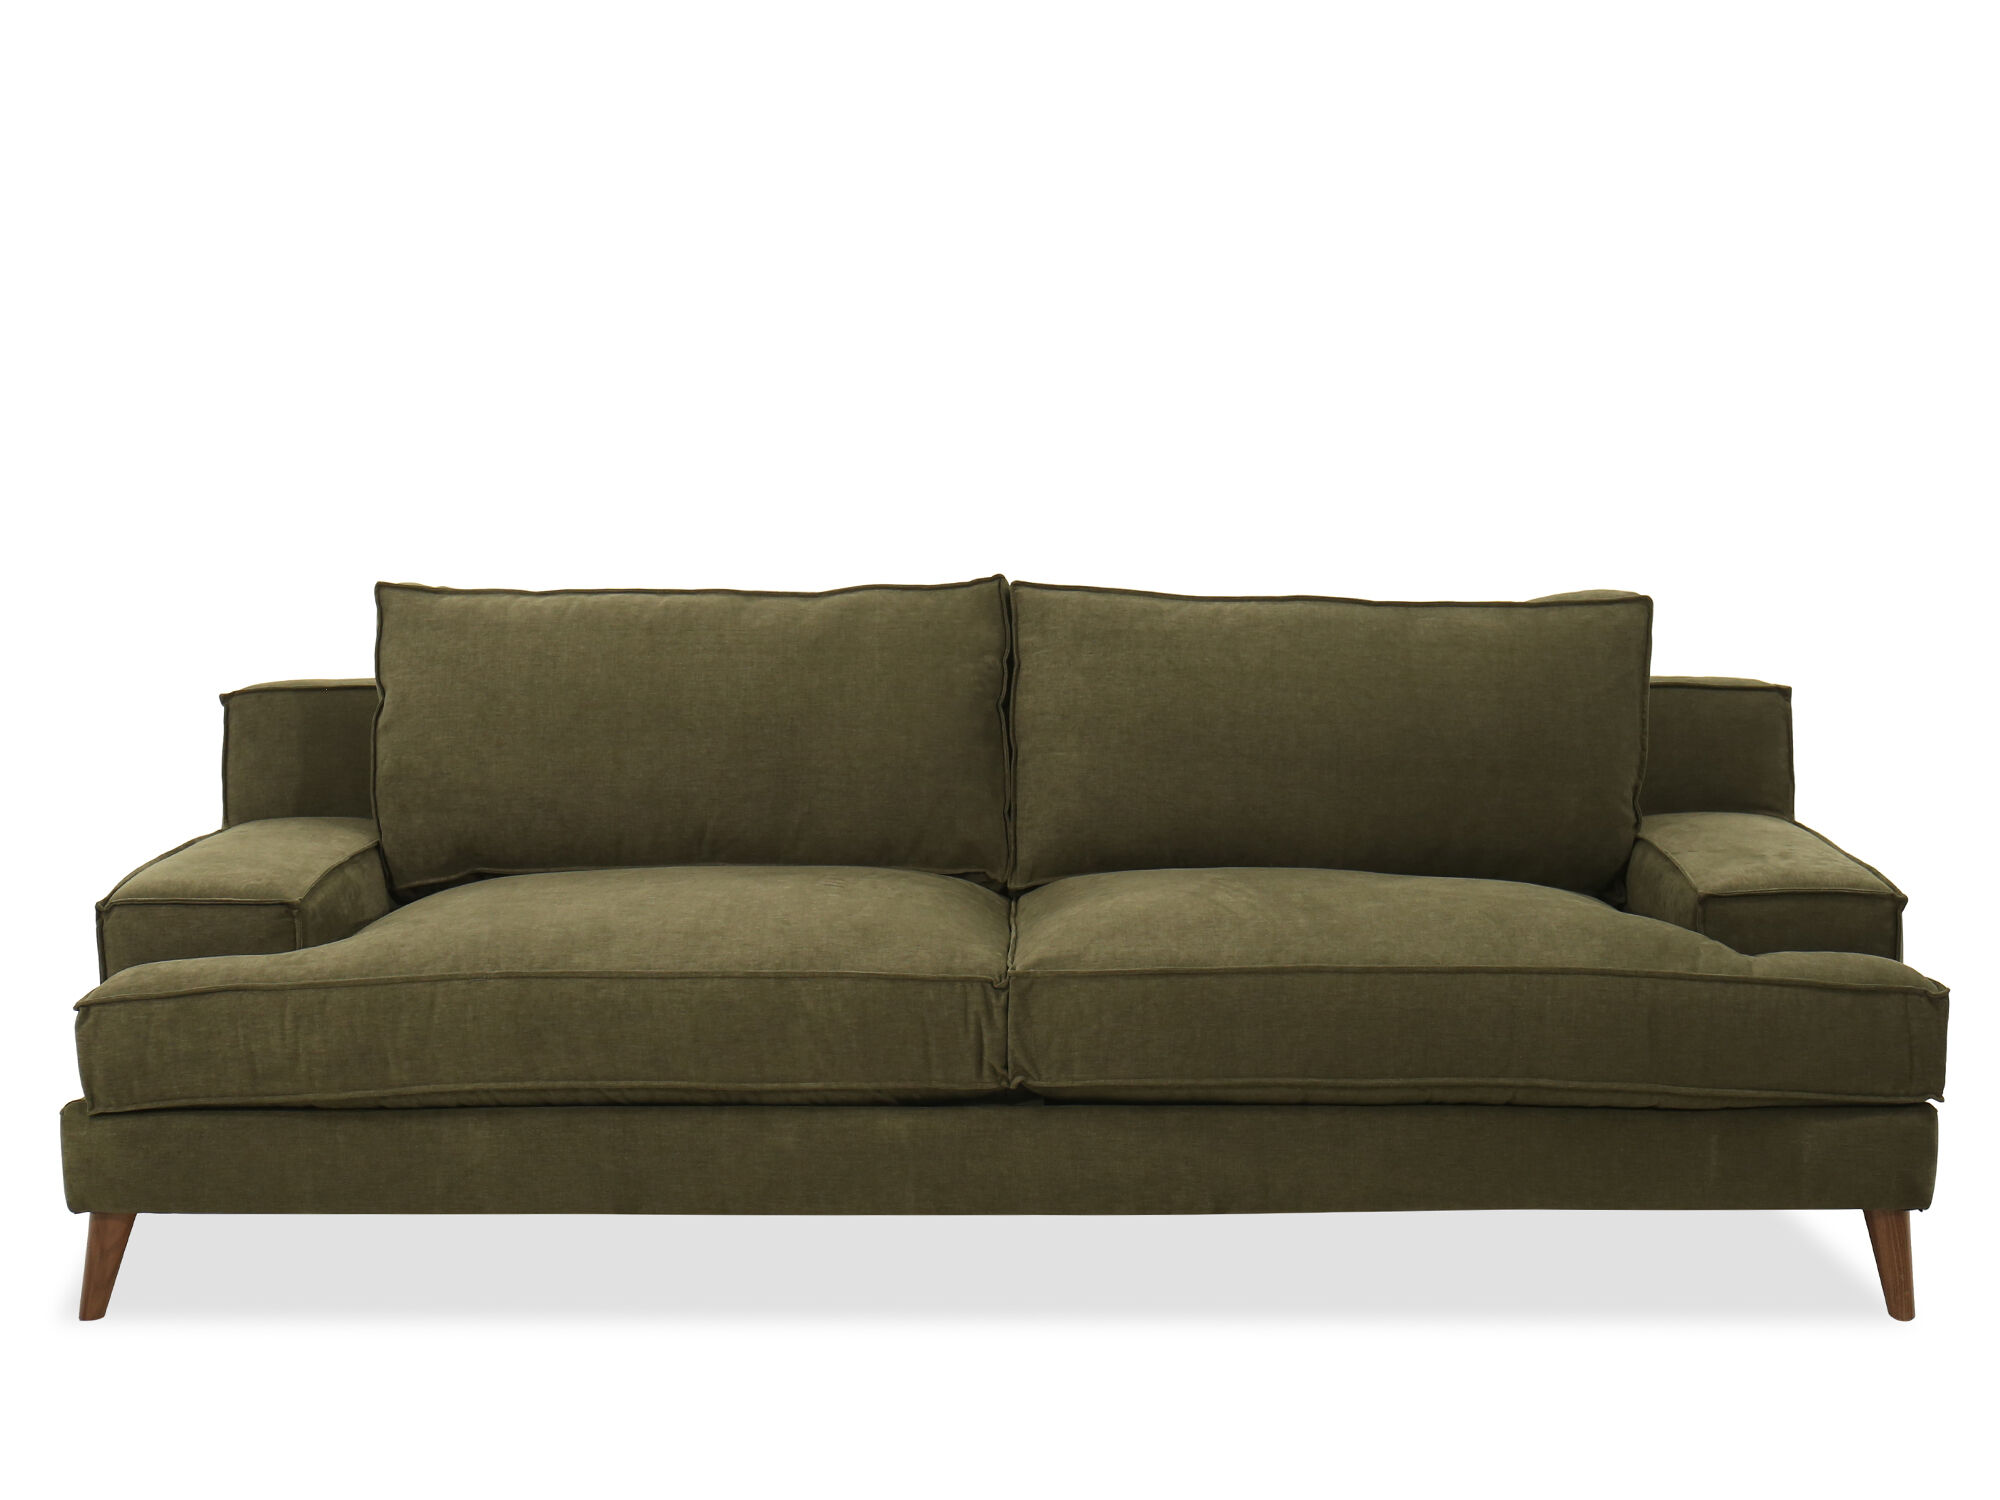 Modern LowProfile Plush Sofa in Forest Green  Mathis